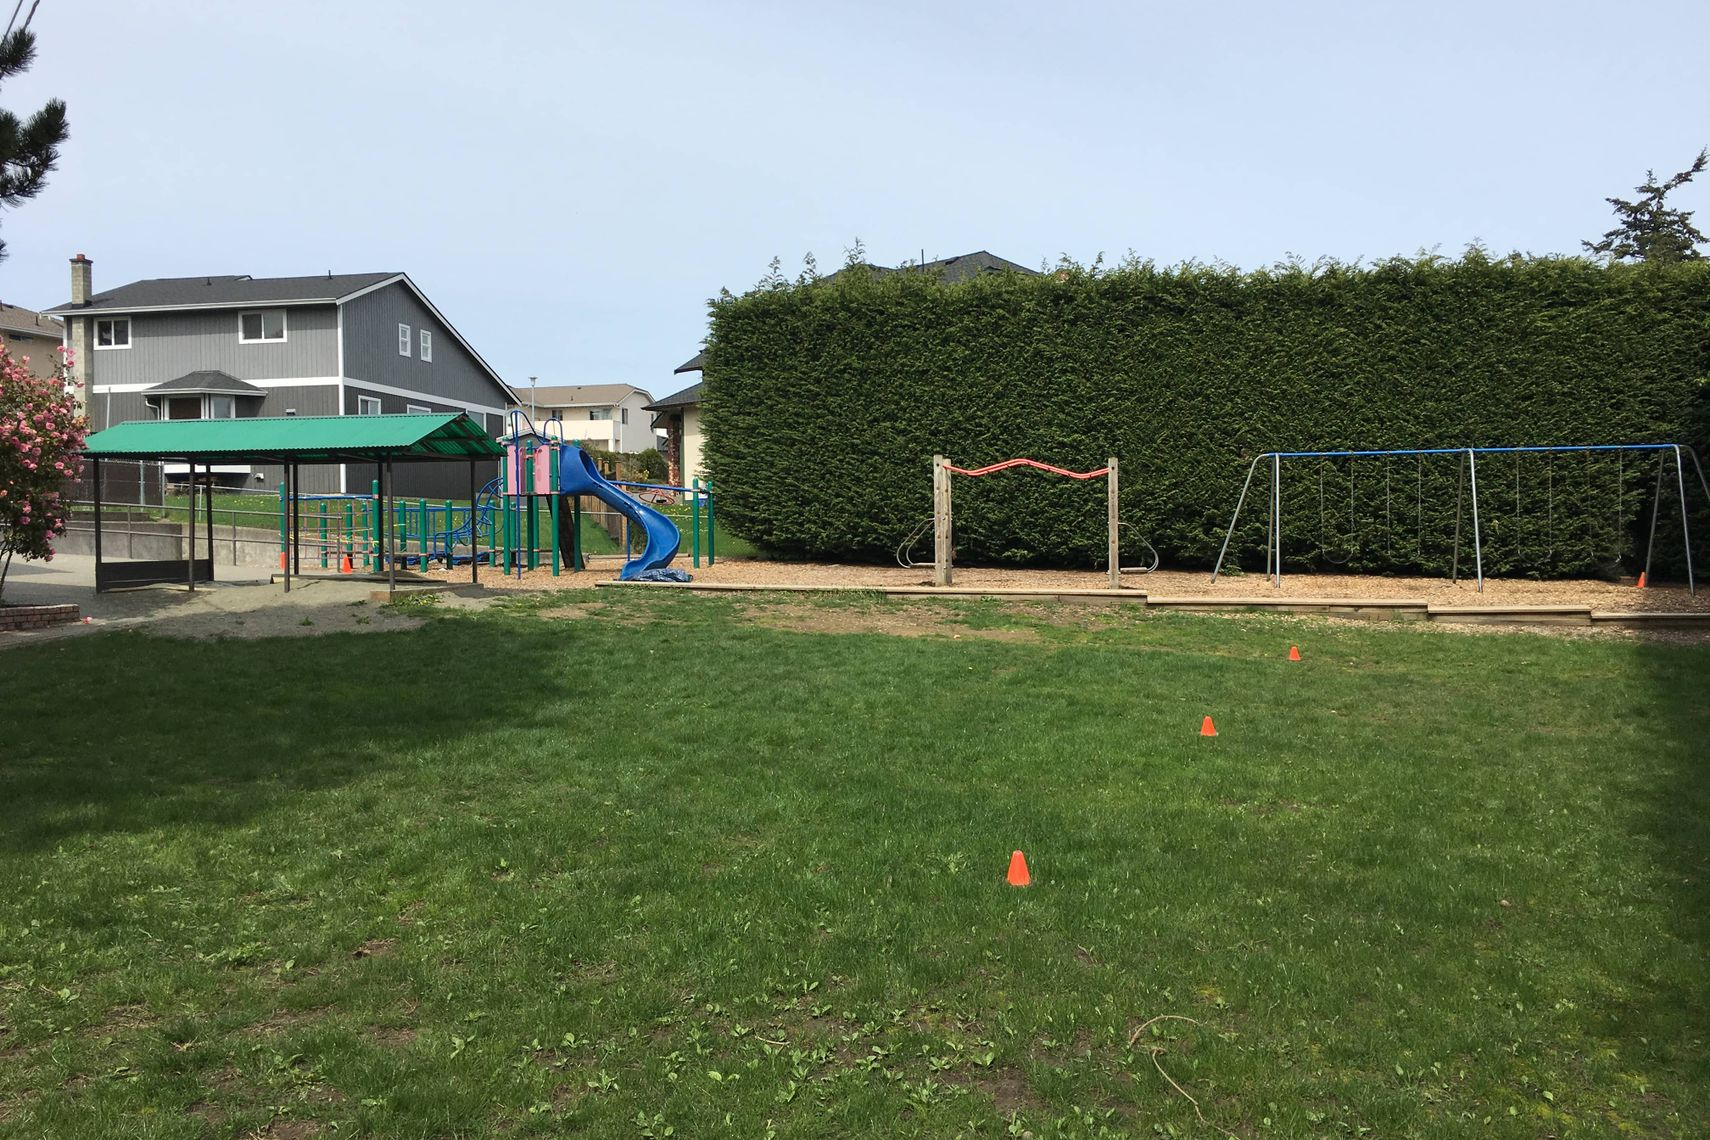 Discovery School needing votes badly to replace playground